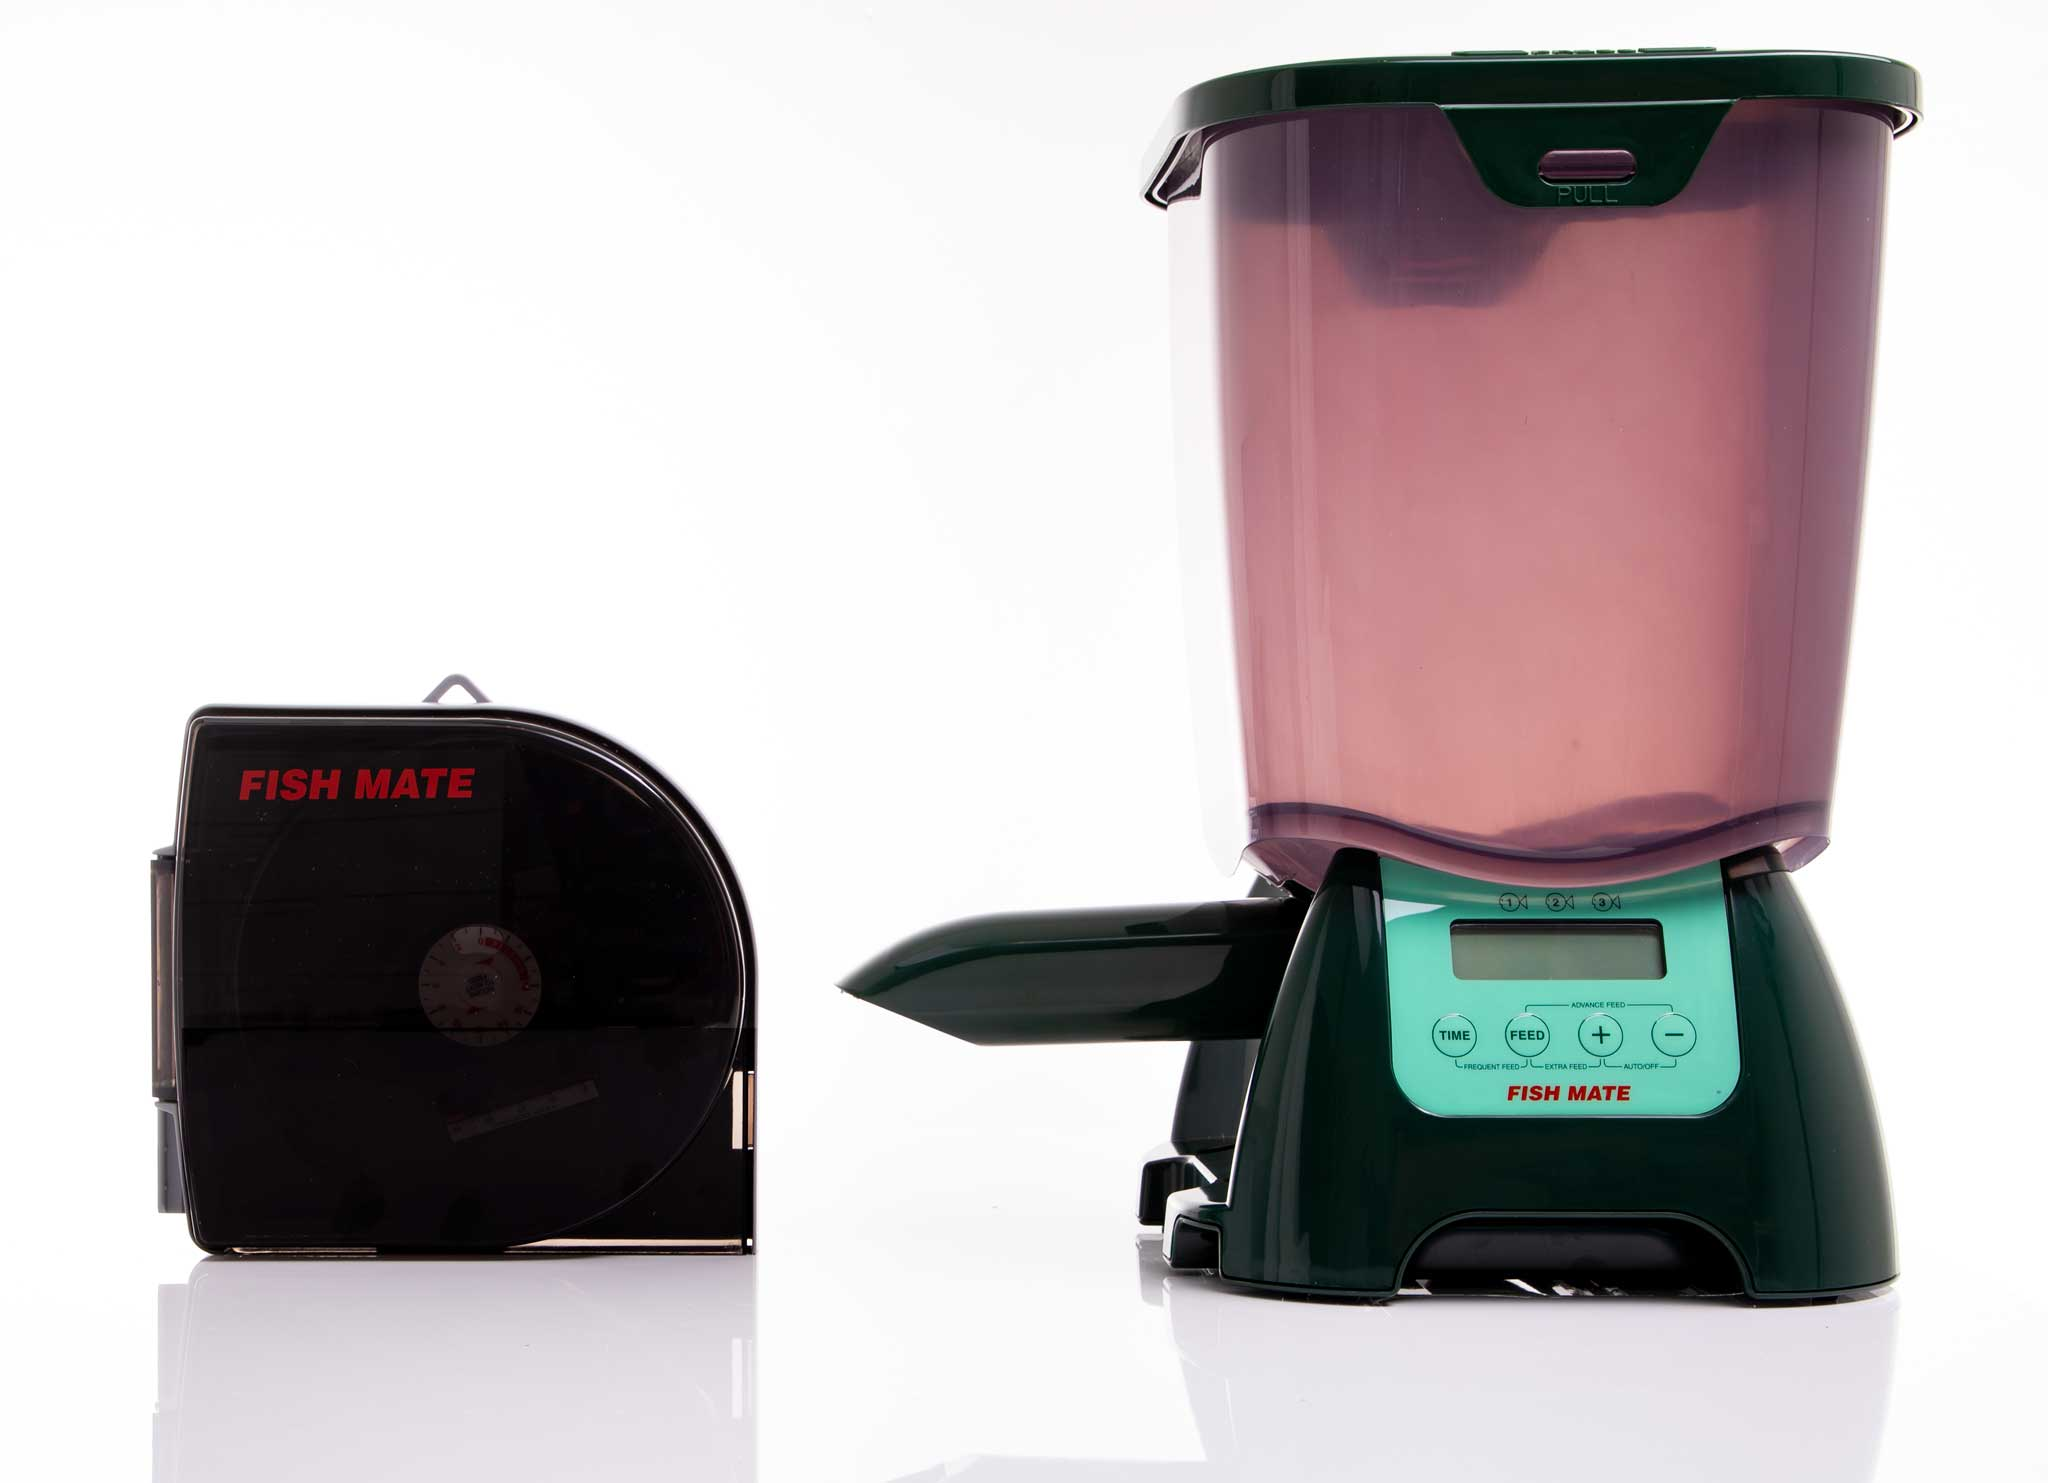 Pond feeders large P7000 and small P21 Fish Mate